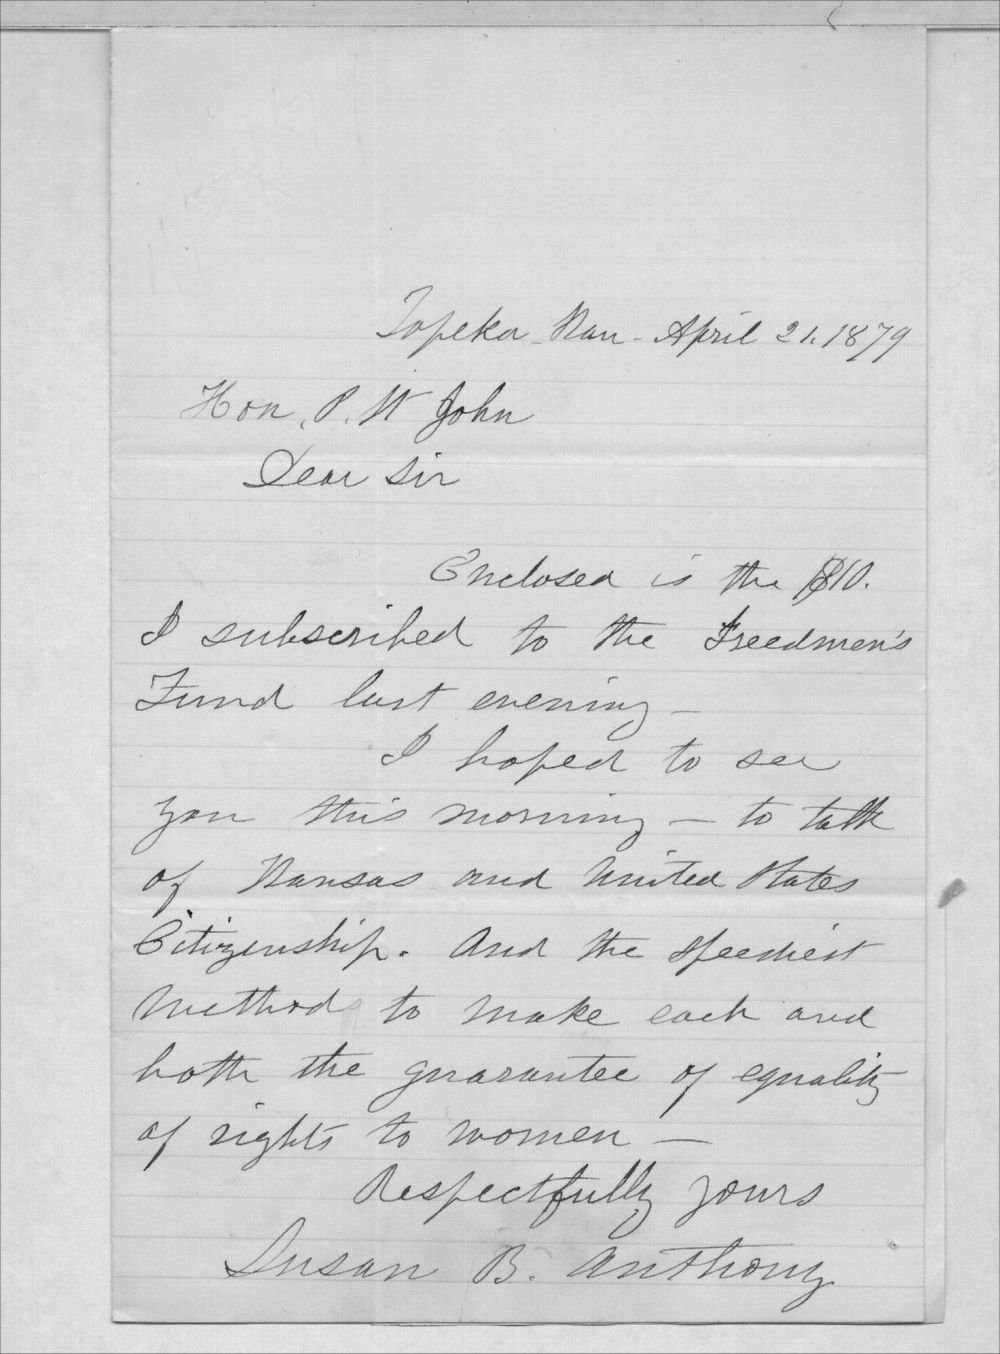 Susan B. Anthony to Governor John P. St. John - 1